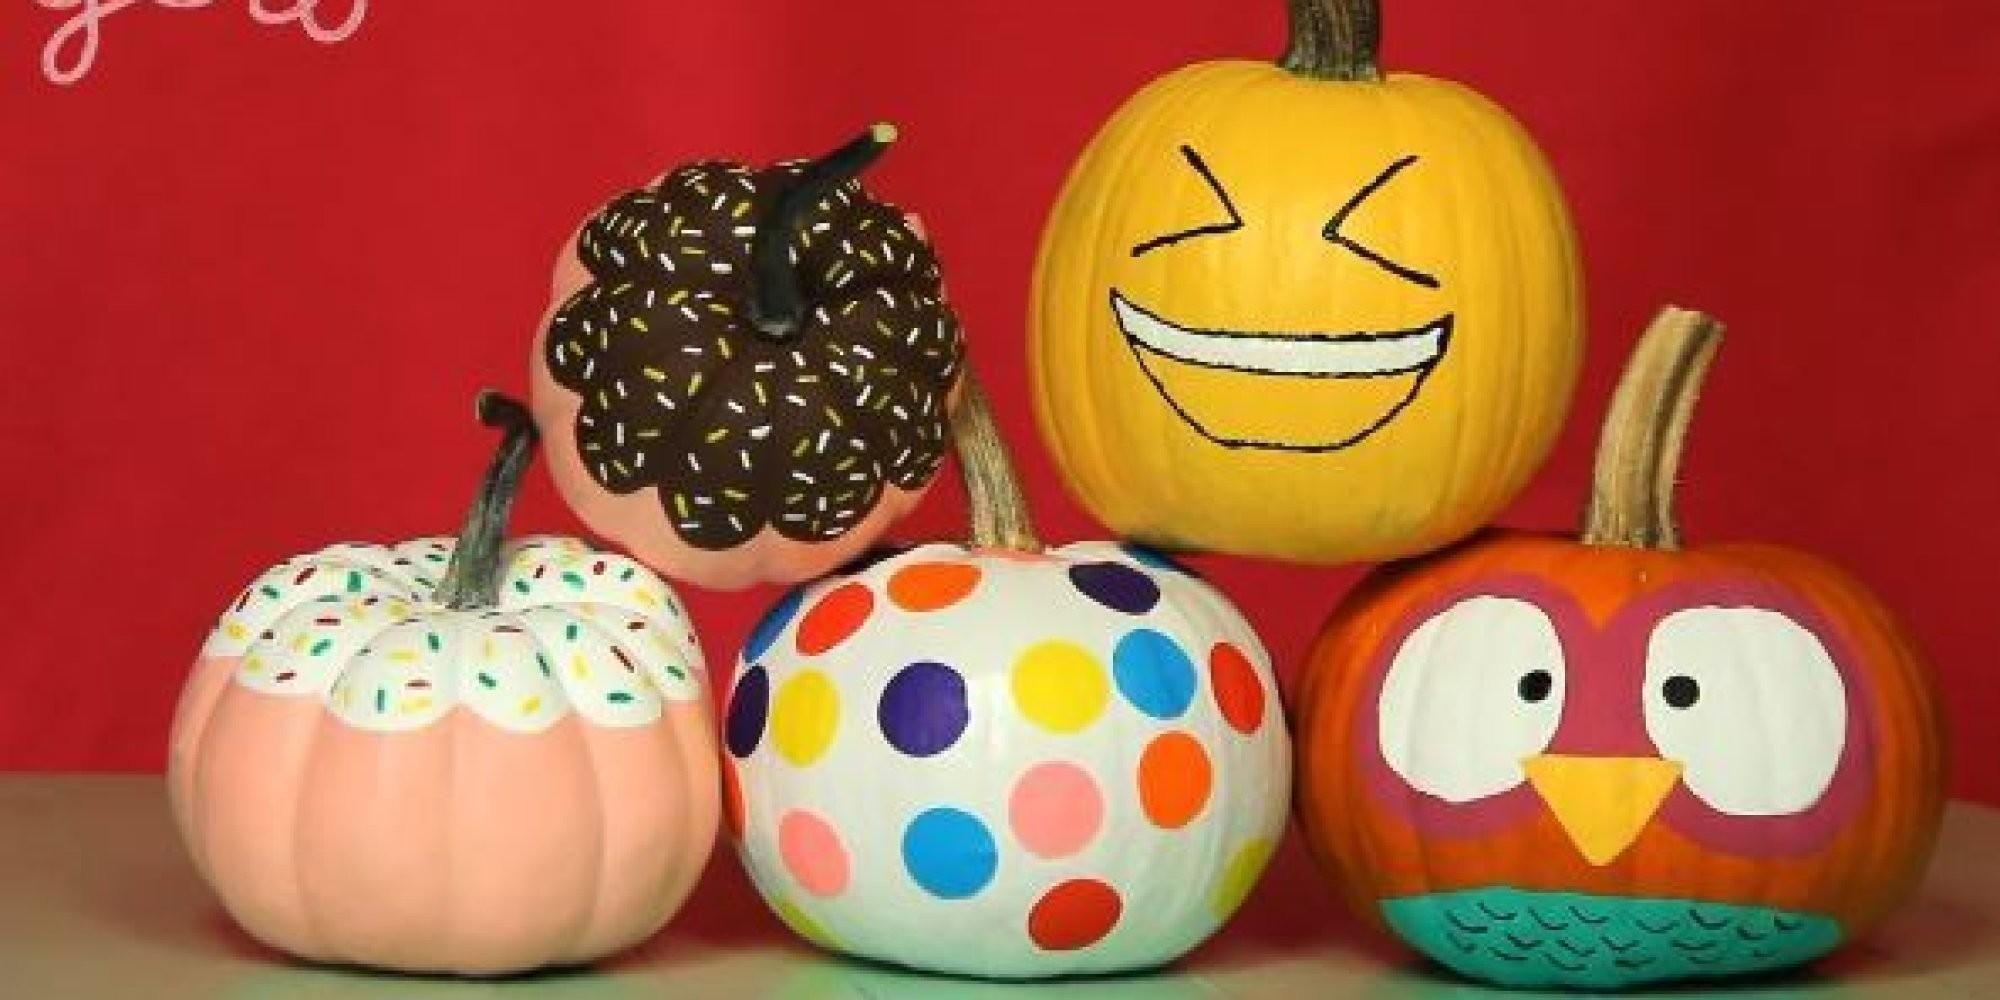 Carve Pumpkin Ideas Creative Designs Kids Love